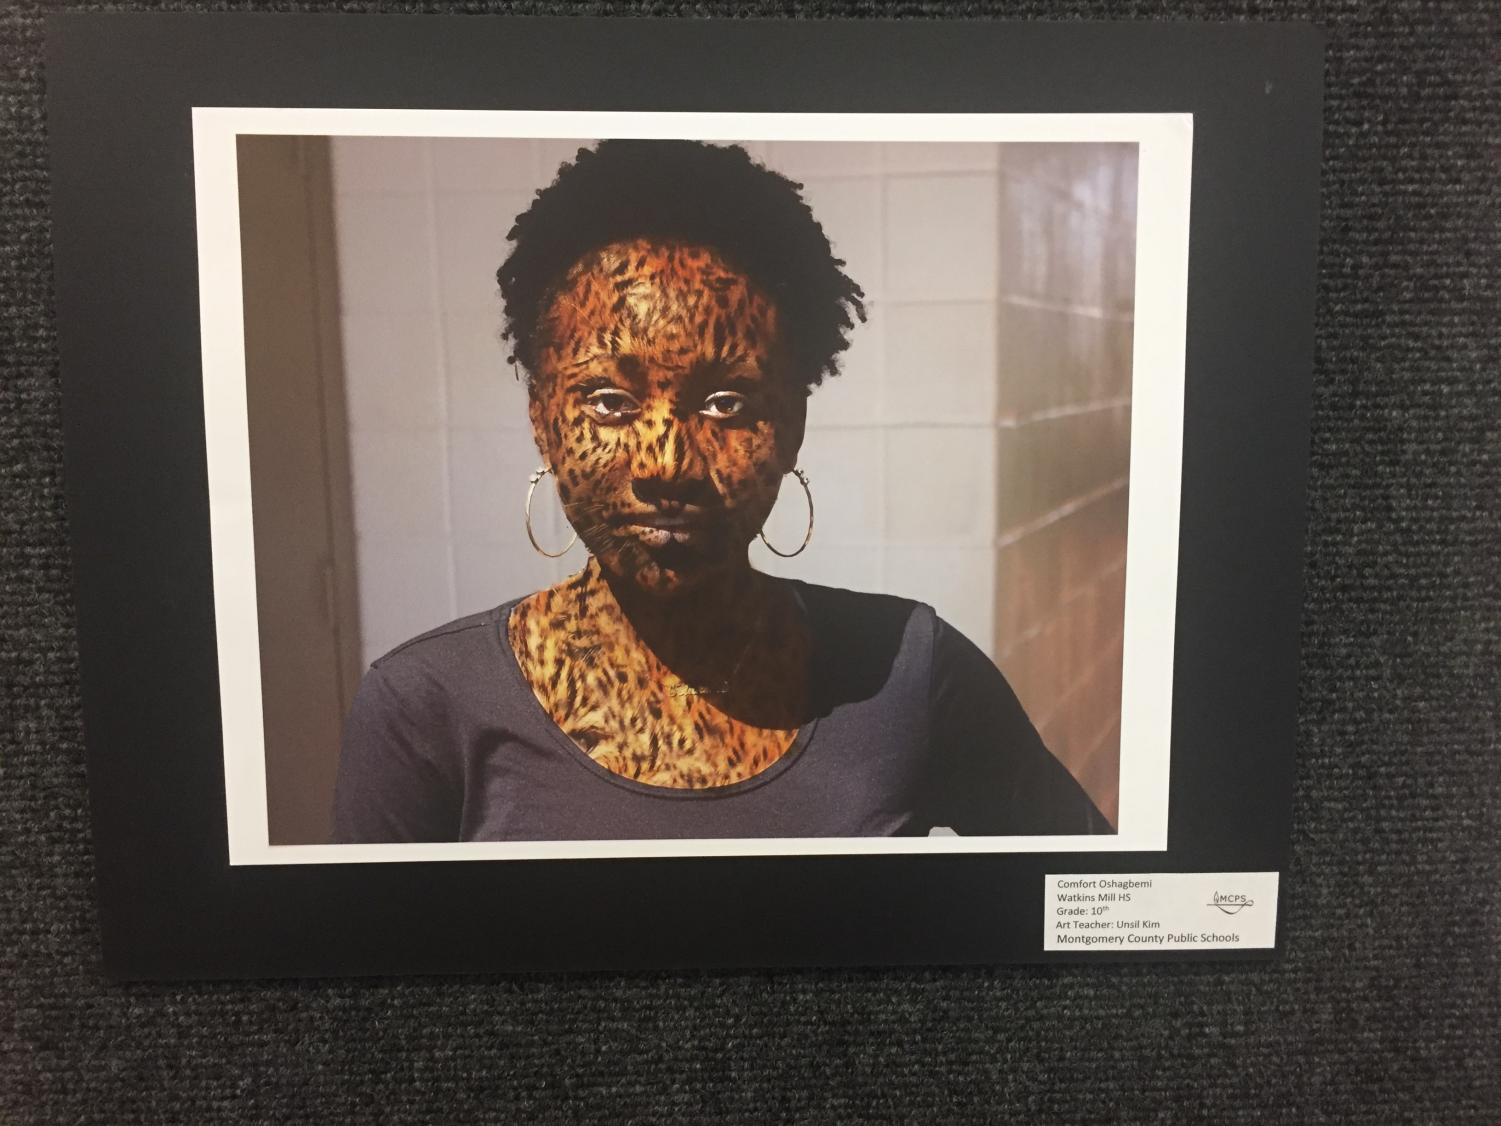 Photoshop+Artwork+by+Sophomore+Comfort+Oshagbemi+of+herself+mixed+with+animal+print+in+the+Watkins+Mill+High+School+Art+Show+2019